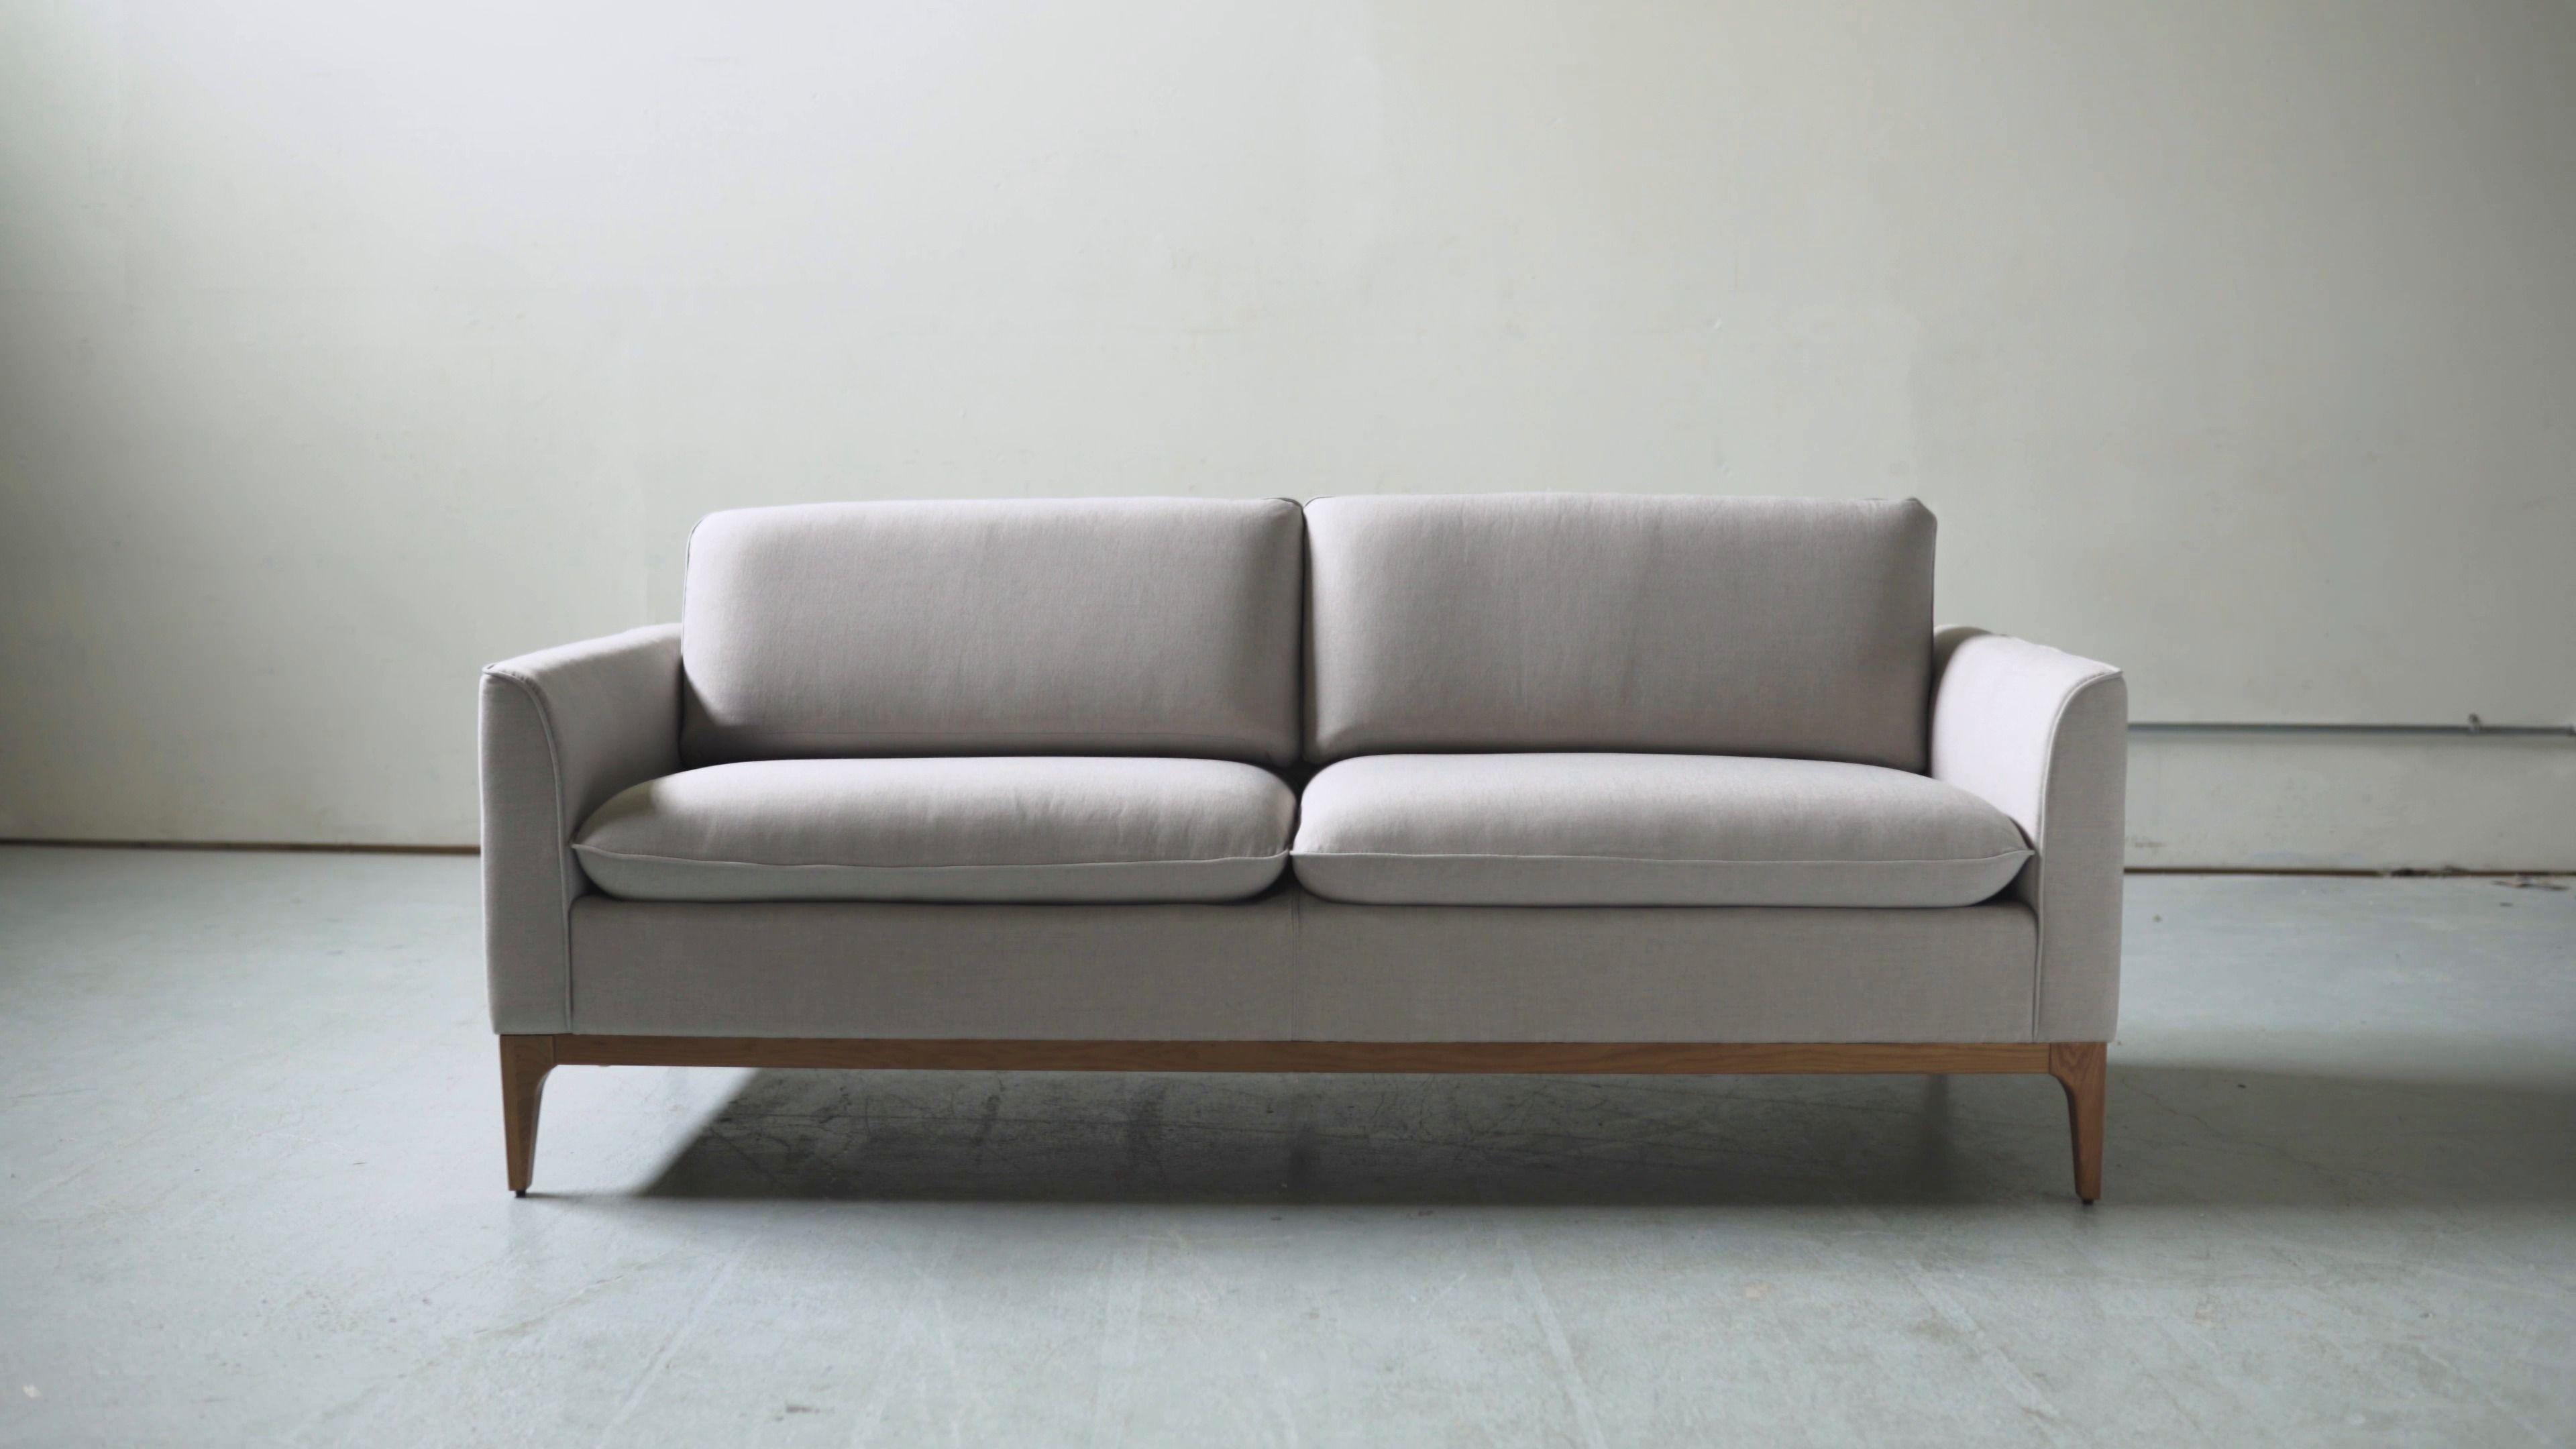 The Loren Sofa Is A Practical Scandinavian Style Sofa Exclusive To The Kure Collection By Rove Concepts The Sofa Scandinavian Style Rove Concepts Sofa Design